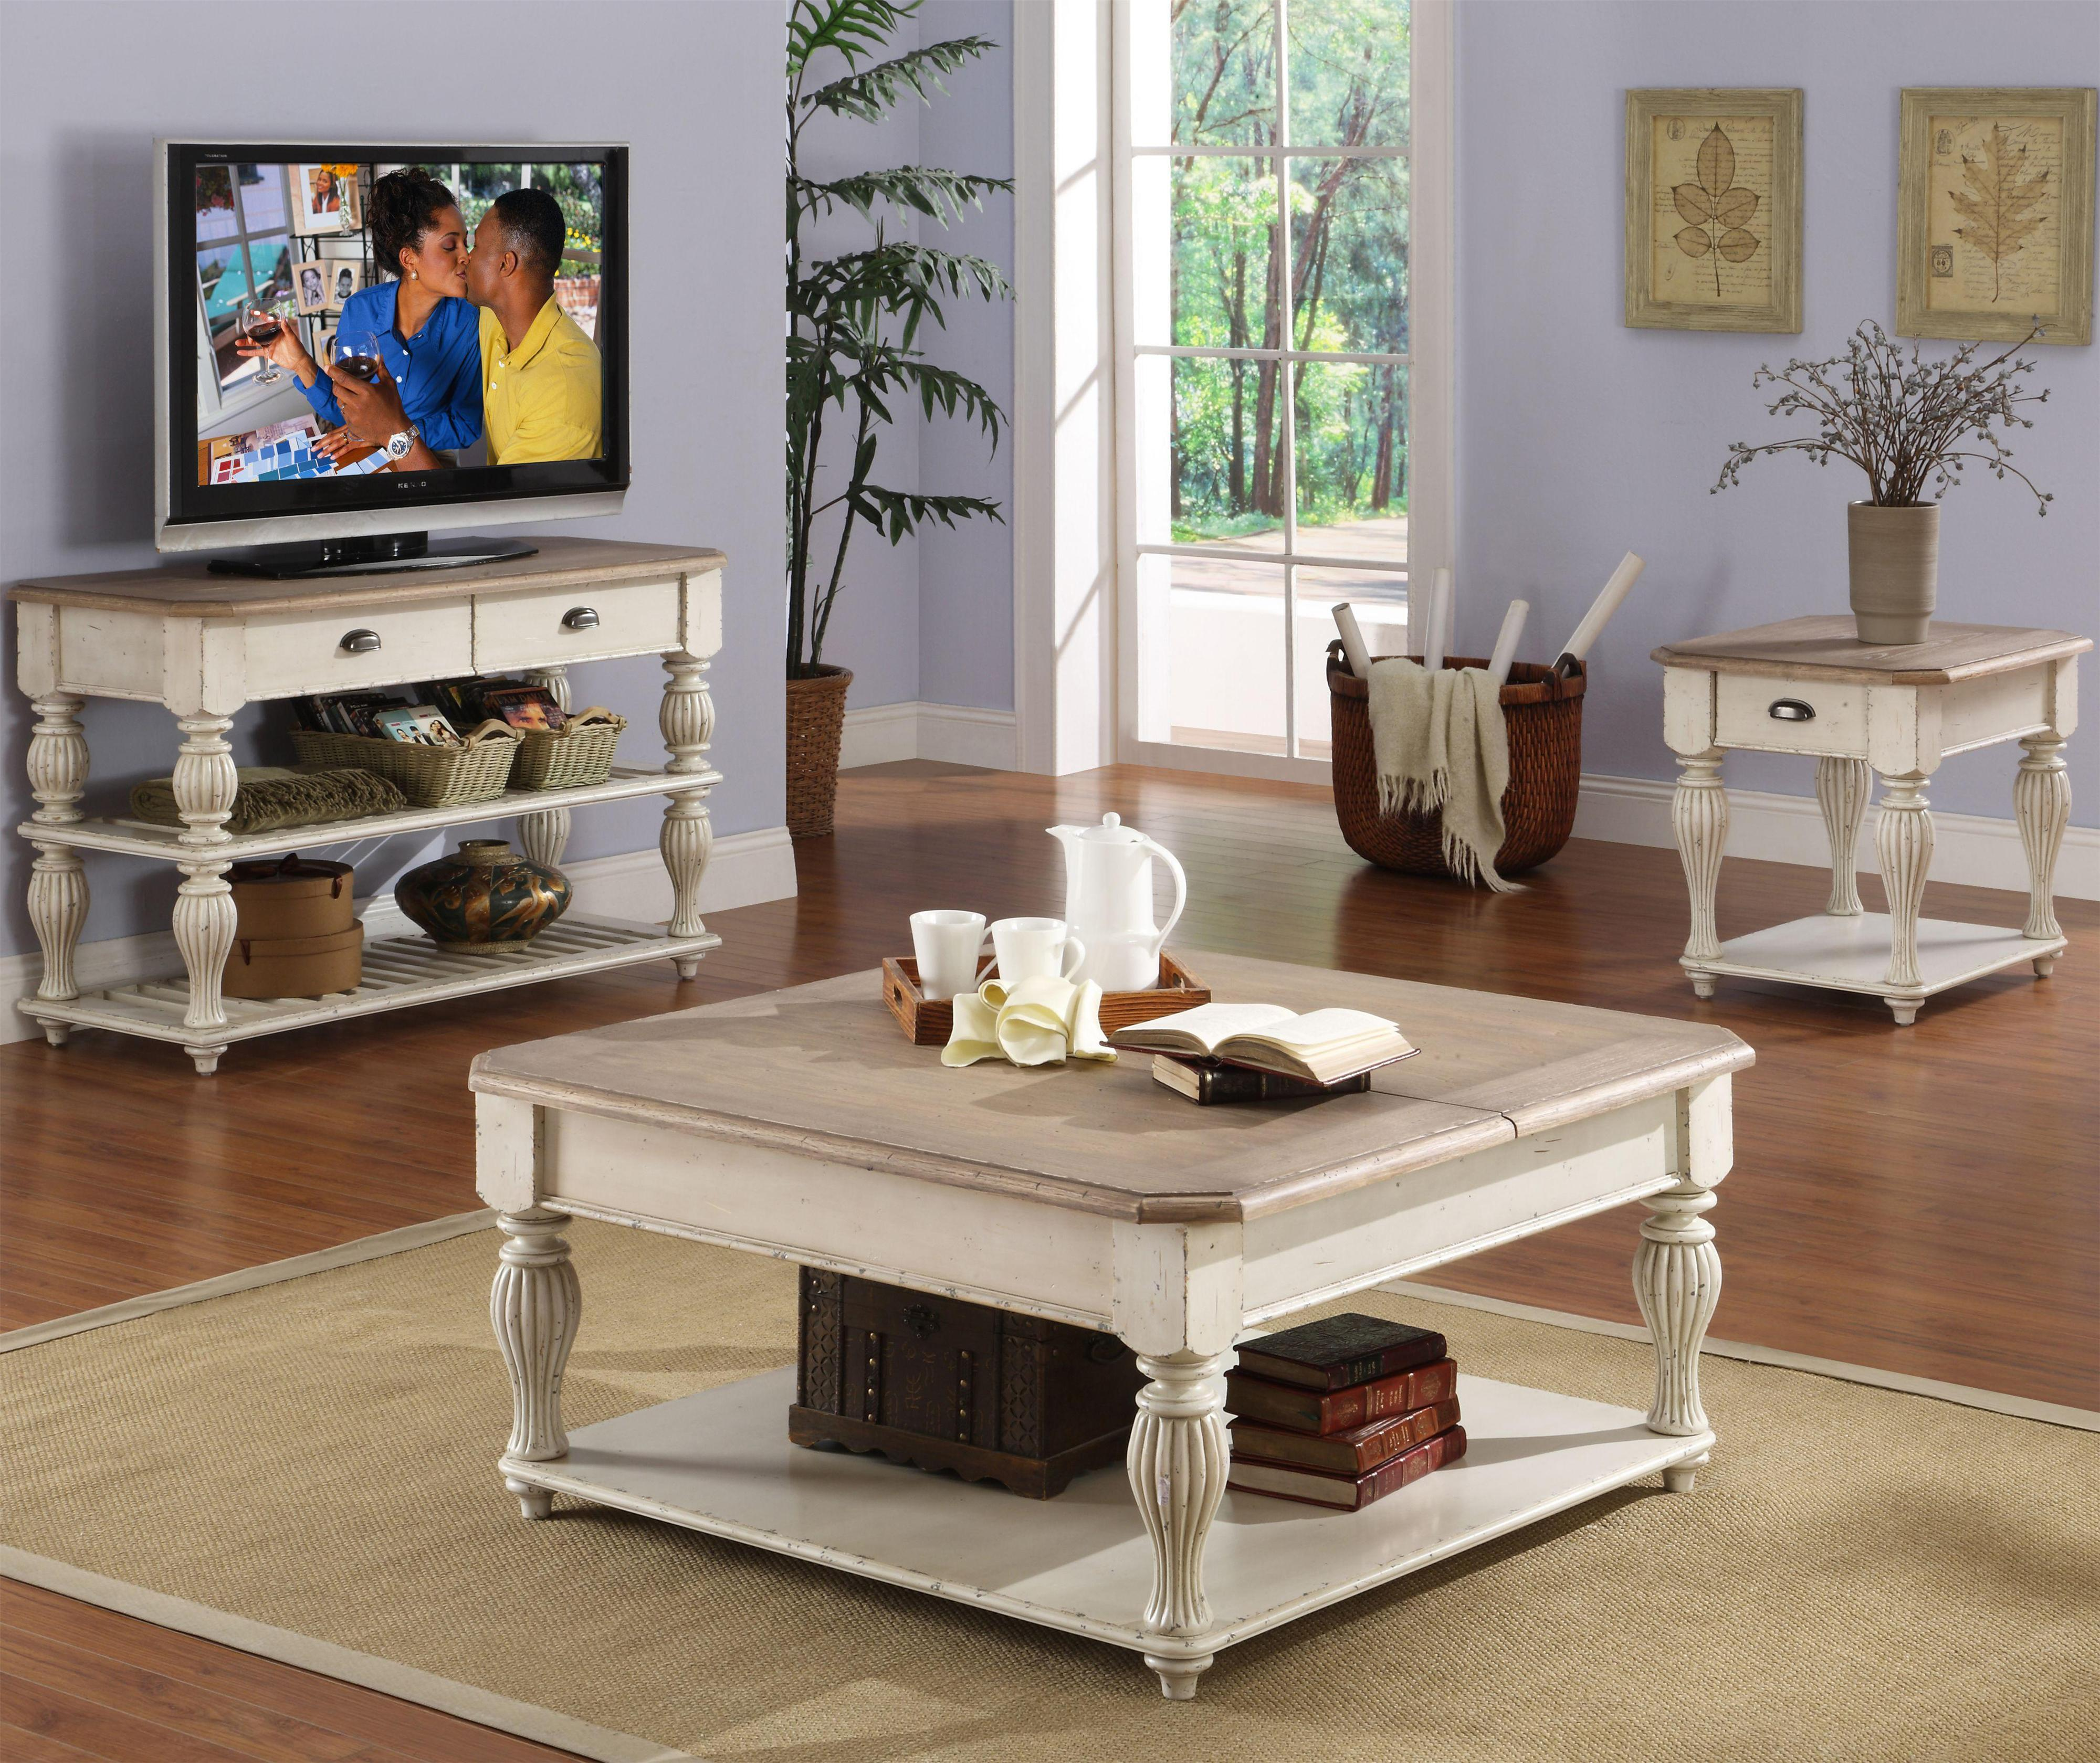 Square Lift-Top Coffee Table With Fixed Bottom Shelf By